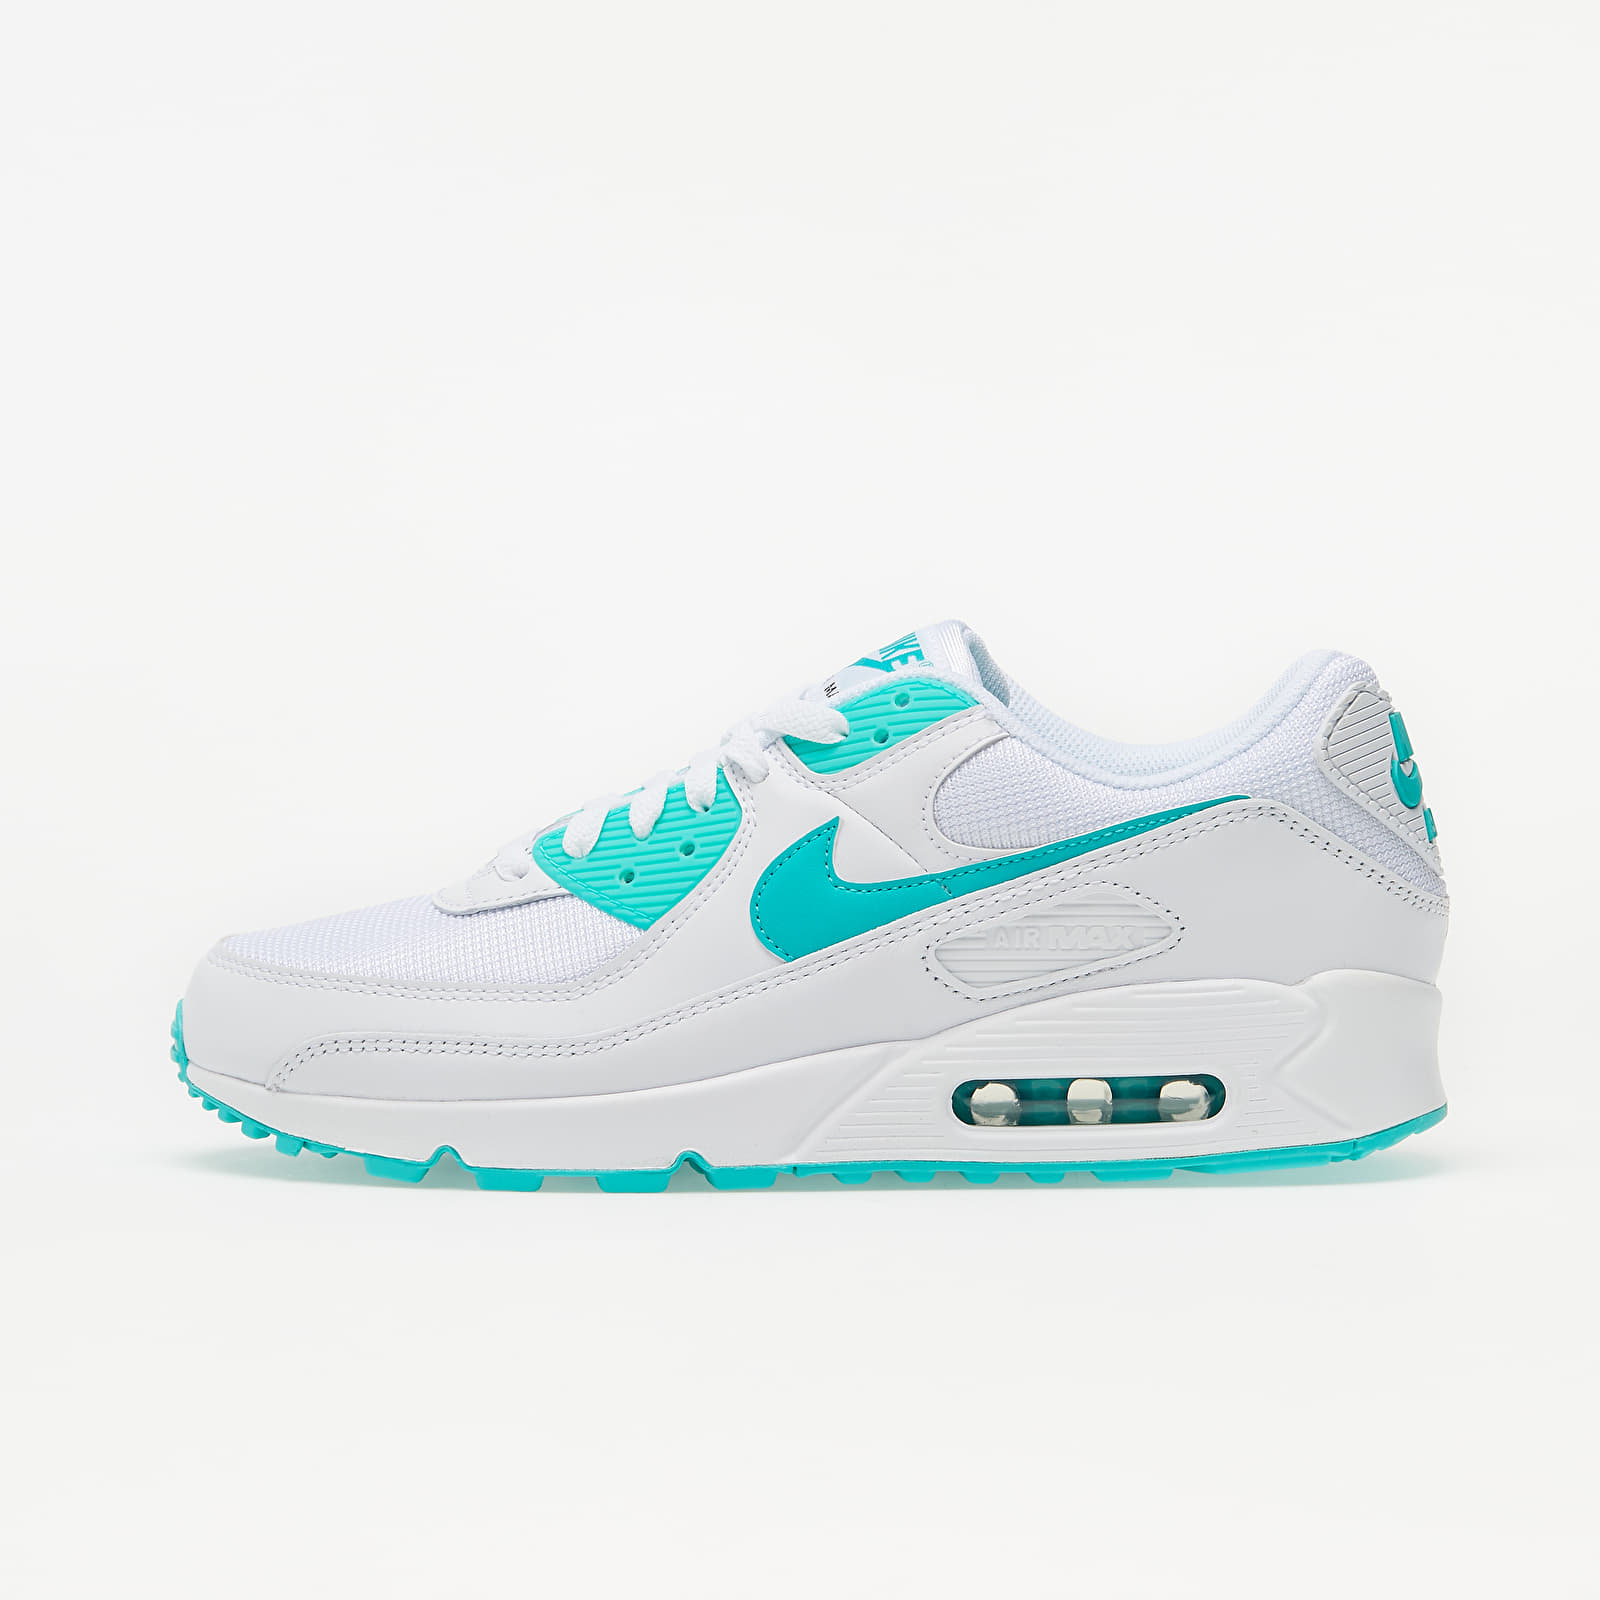 Nike Air Max 90 White/ Hyper Jade-Black EUR 42.5